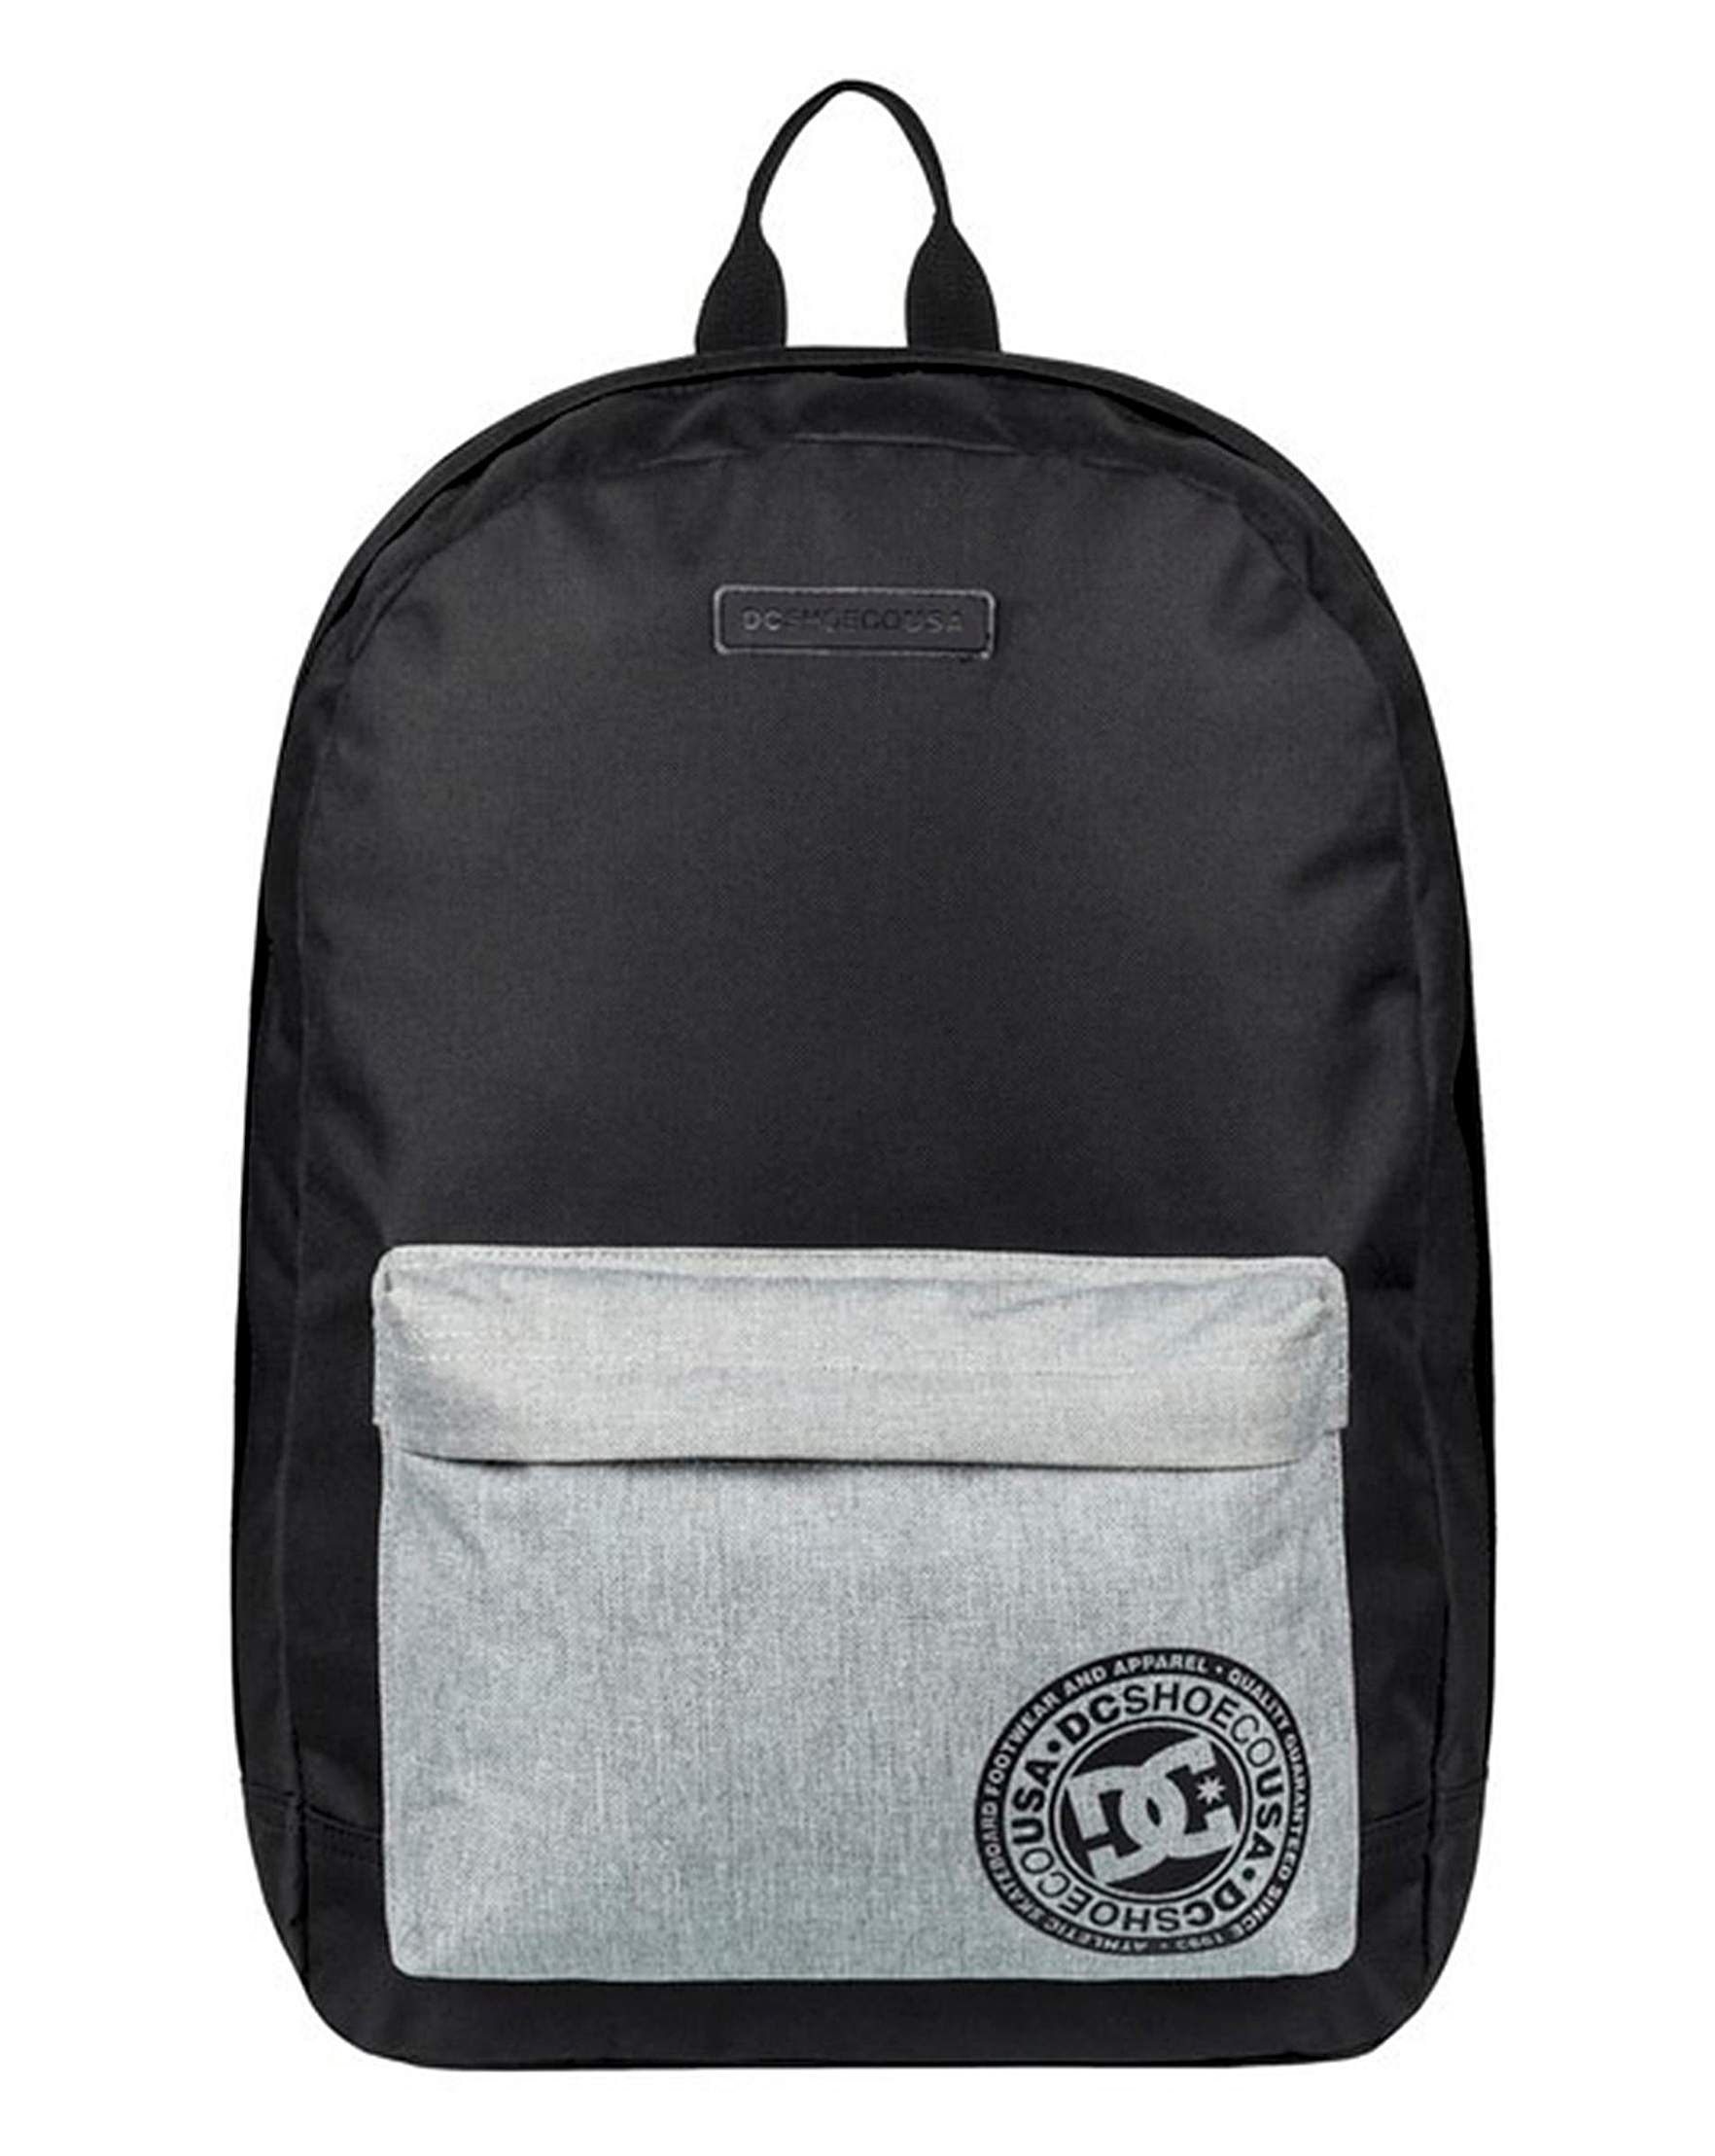 7e75d77963 DC Shoes Backstack Colour Block Bag | Jacamo